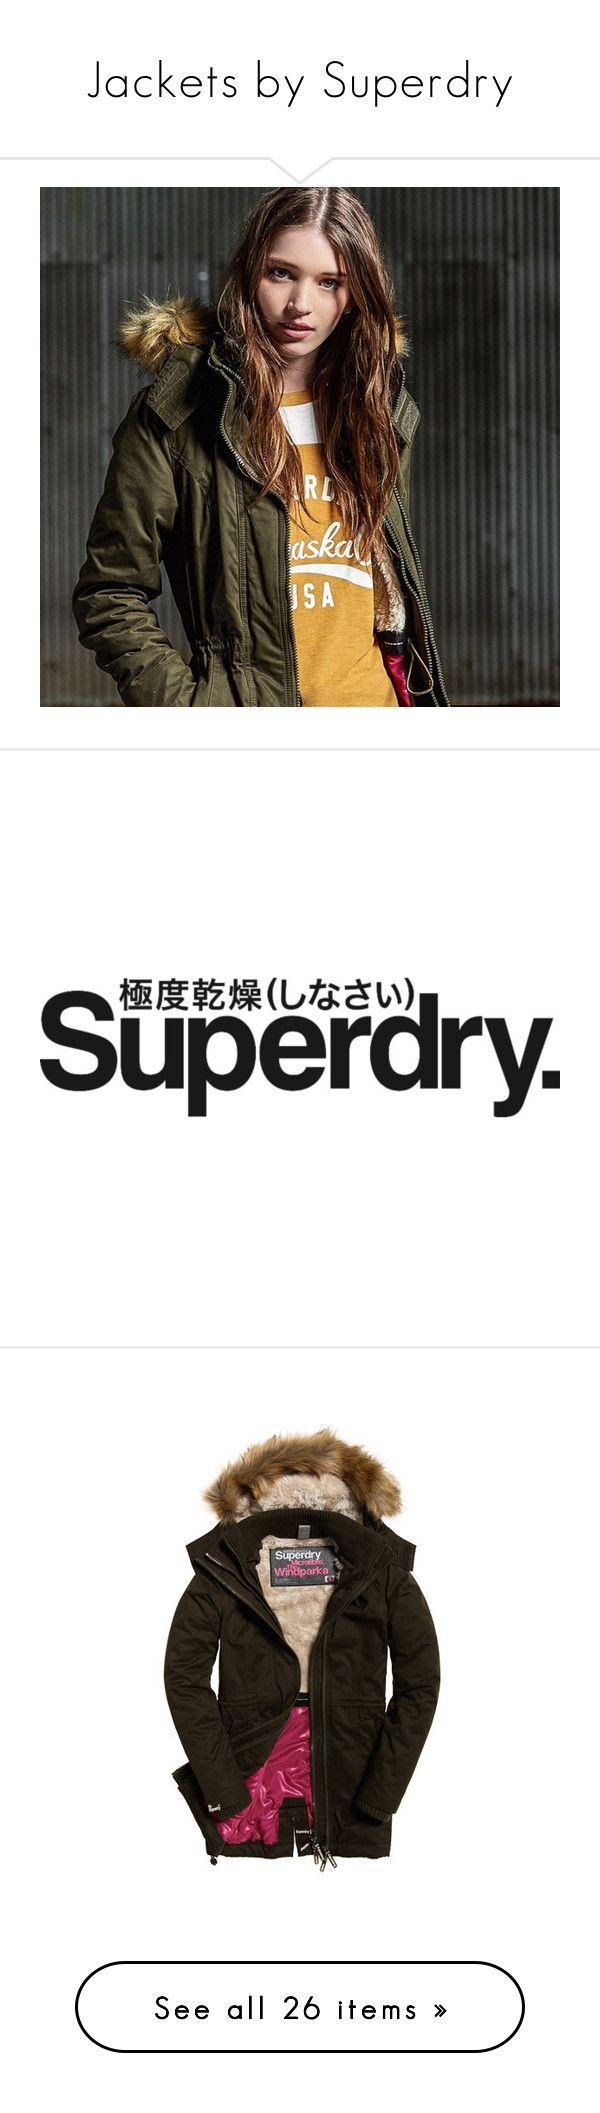 """""""Jackets by Superdry"""" by sylandrya ❤ liked on Polyvore featuring outerwear, jackets, microfiber jacket, brown jacket, superdry, tall jackets, superdry jacket, army jacket, fuji and coats"""